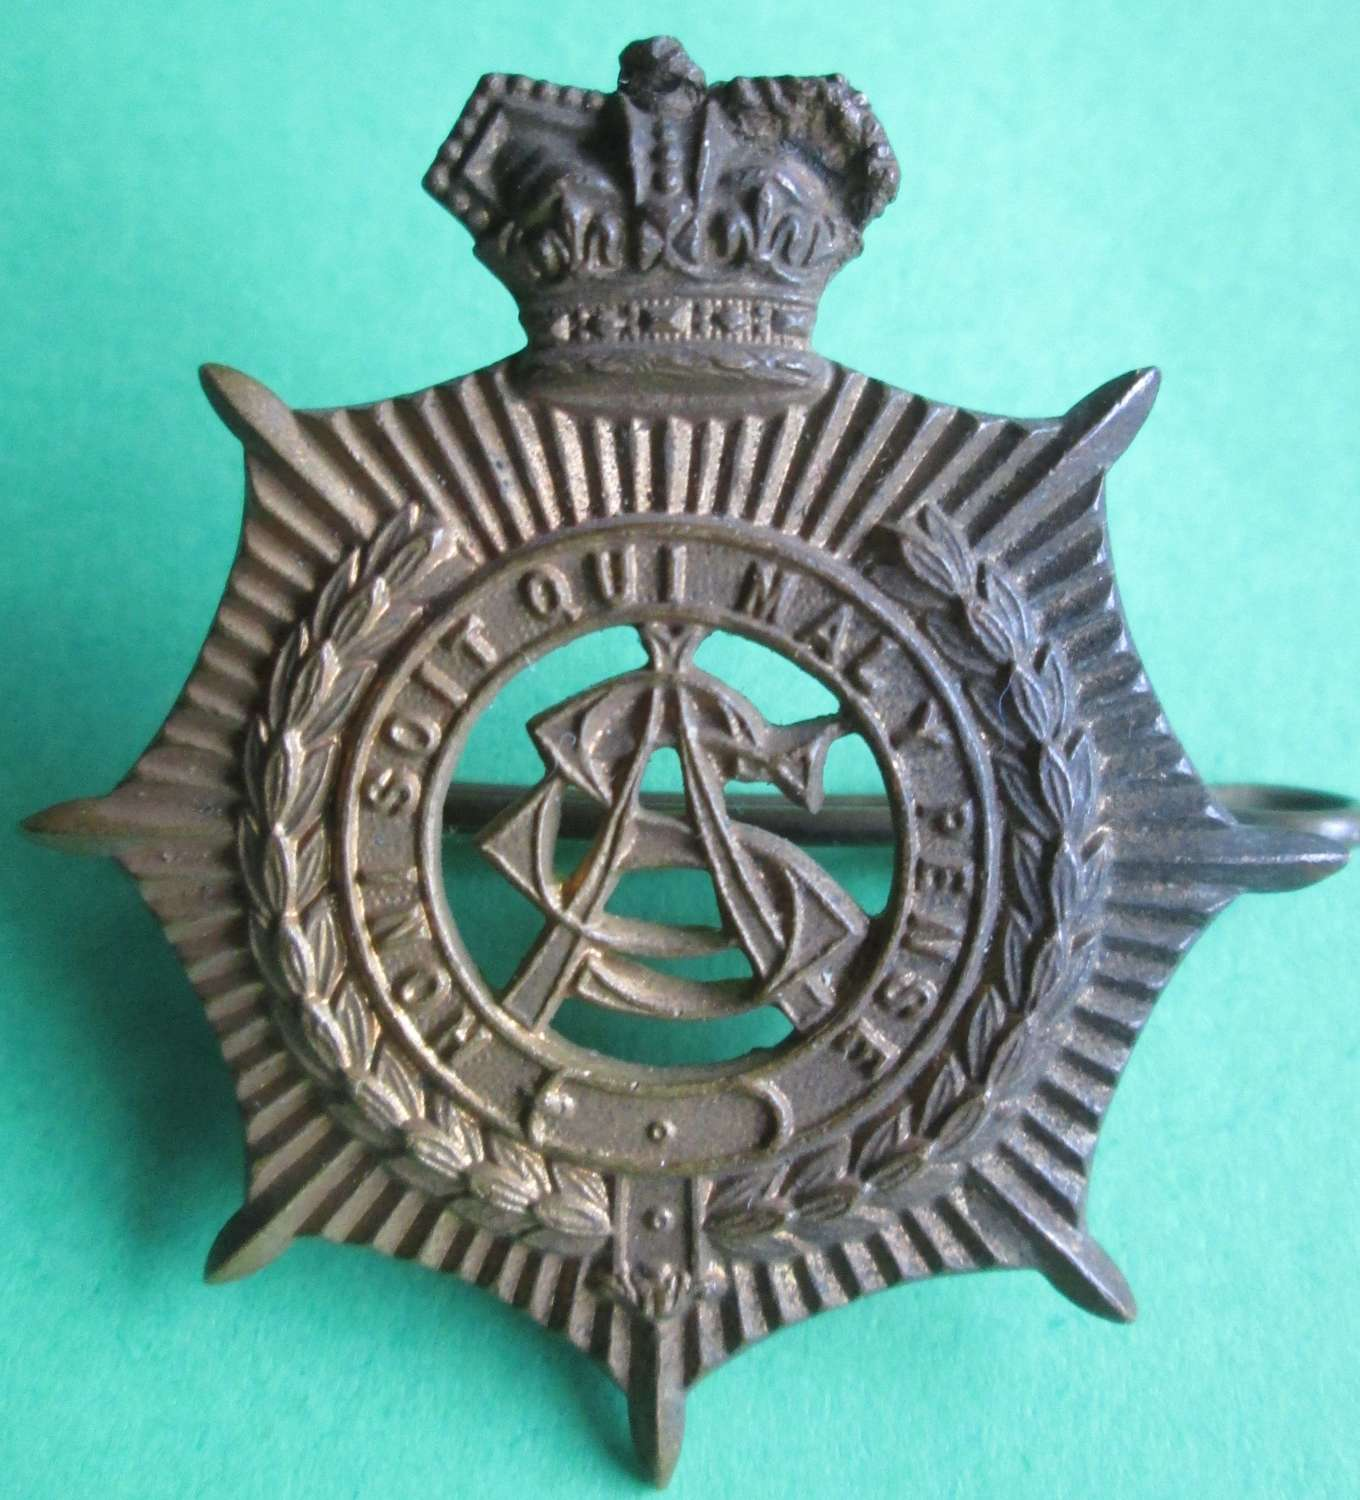 A VICTORIAN ARMY SERVICE CORPS CAP BADGE